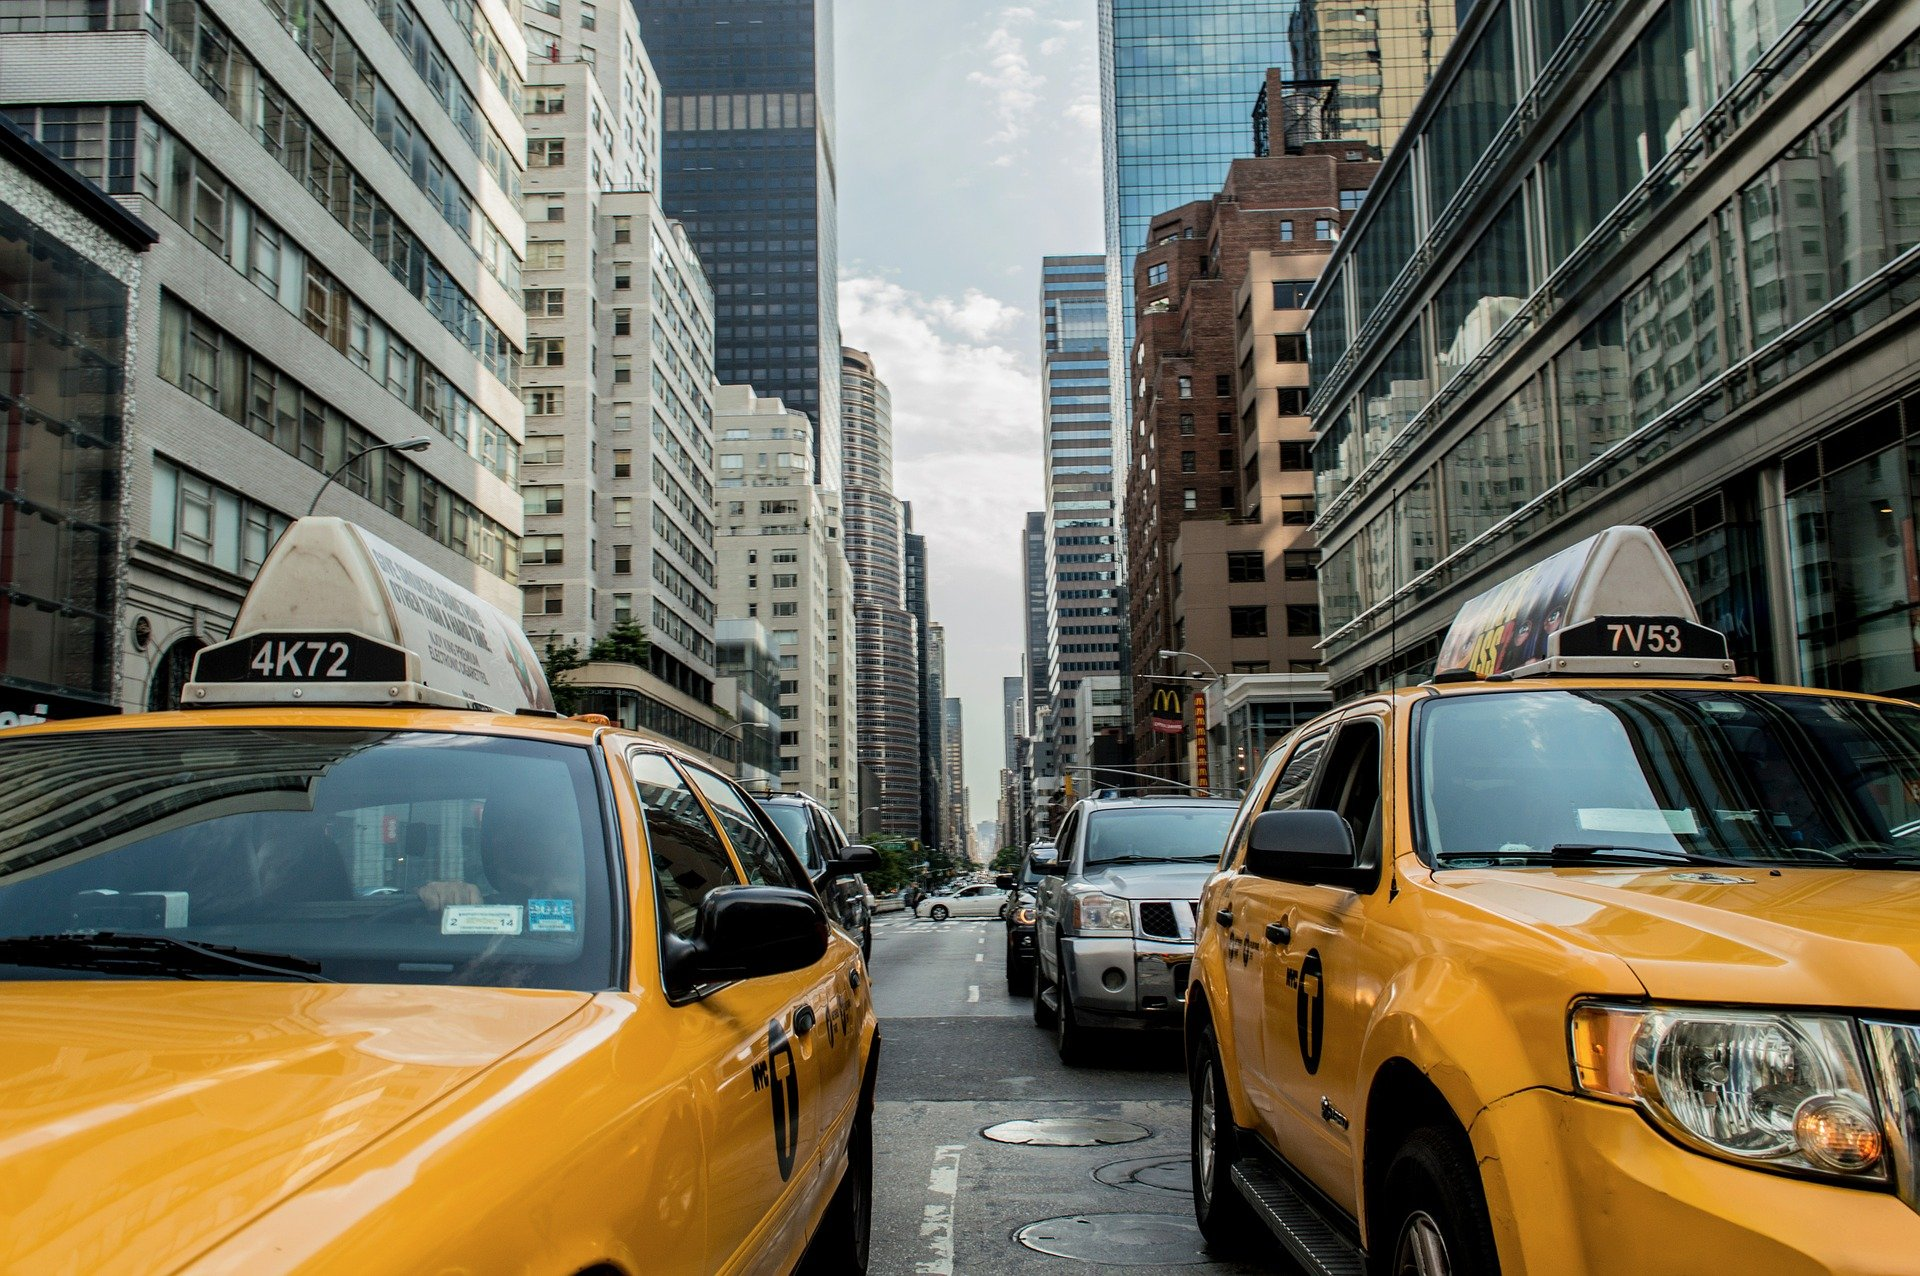 Yellow cabs in a street in NYC